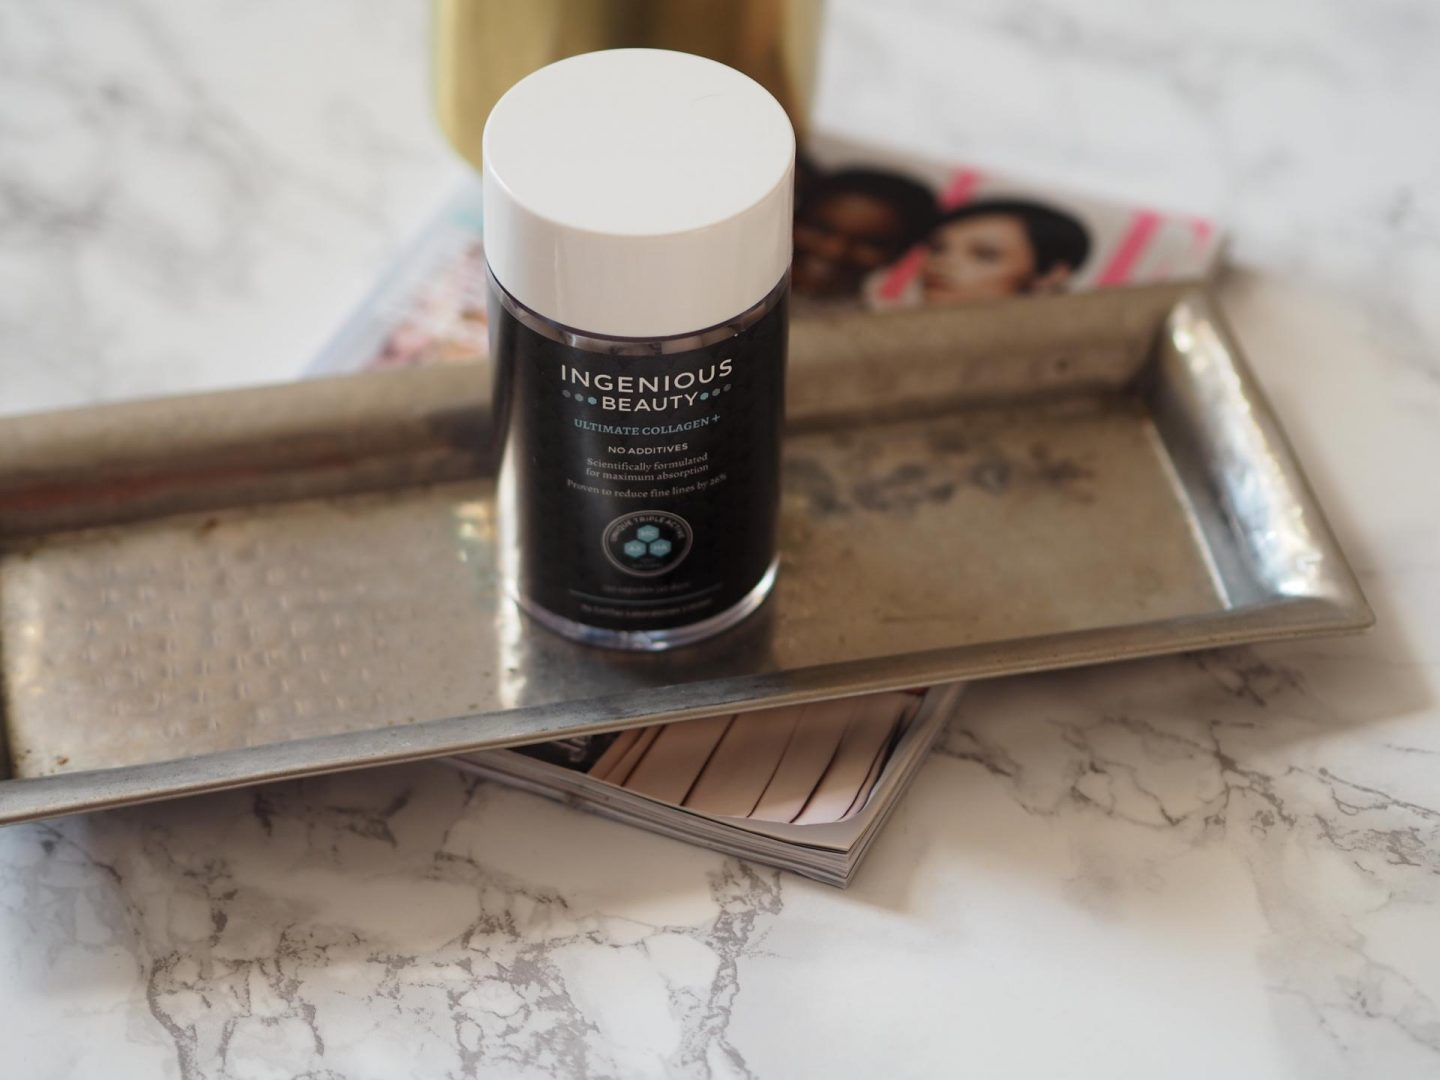 Luxe Beauty Buys - Product: Ingenious Beauty Ultimate Collagen+ Skincare Supplement